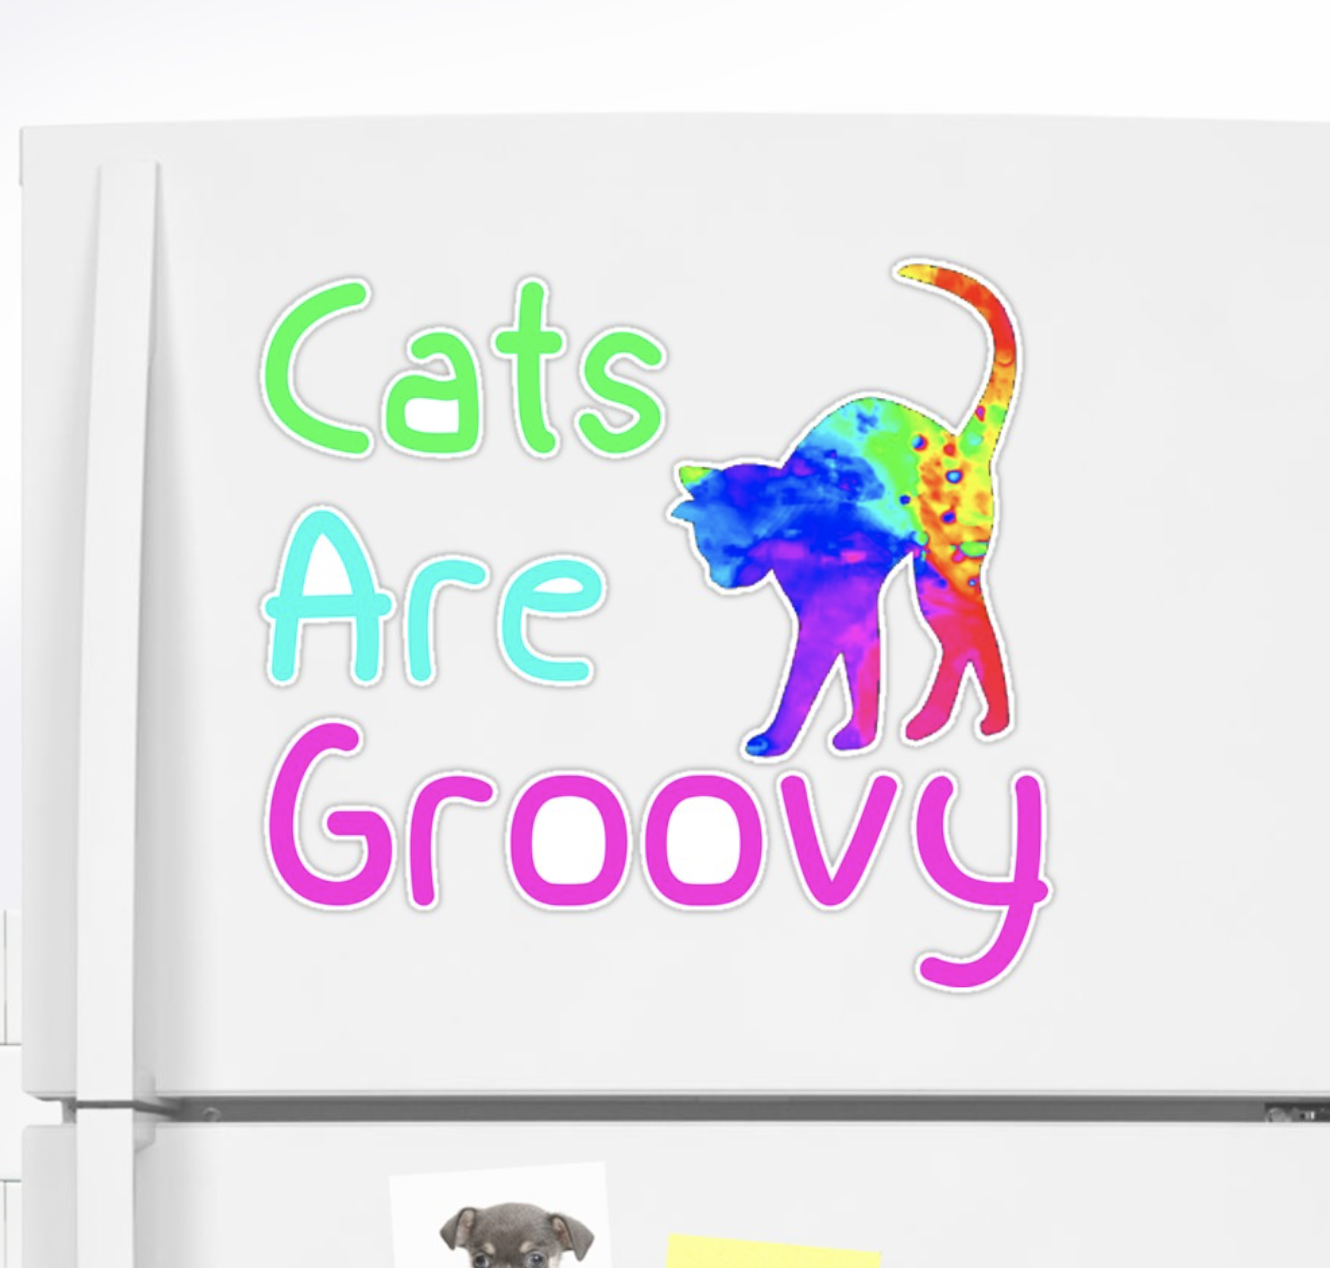 Cats are Groovy Sticker